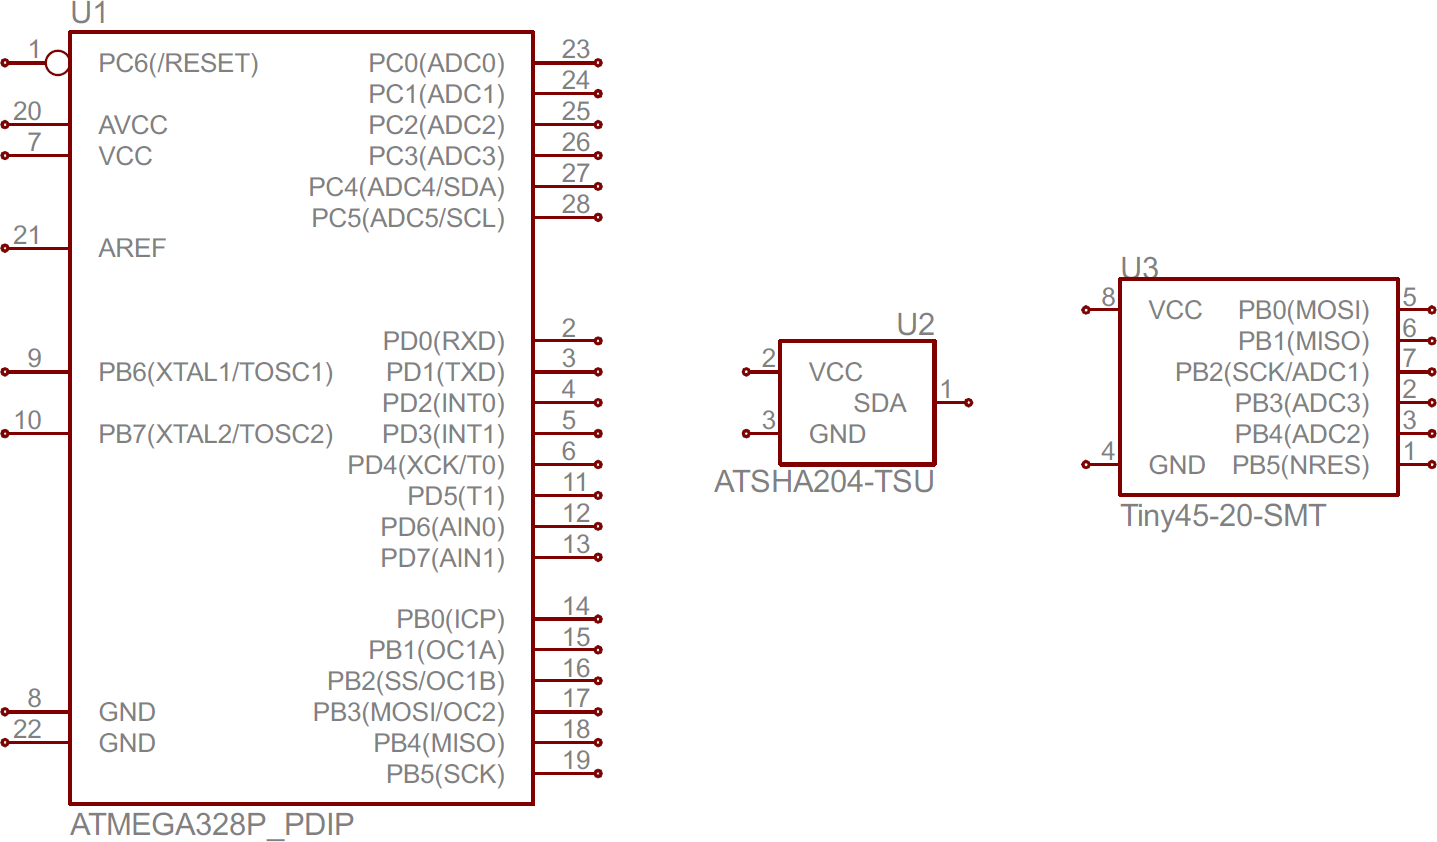 How To Read A Schematic T Mobile Wiring Diagrams Atmega328 Atsha204 And Attiny45 Ic Symbols